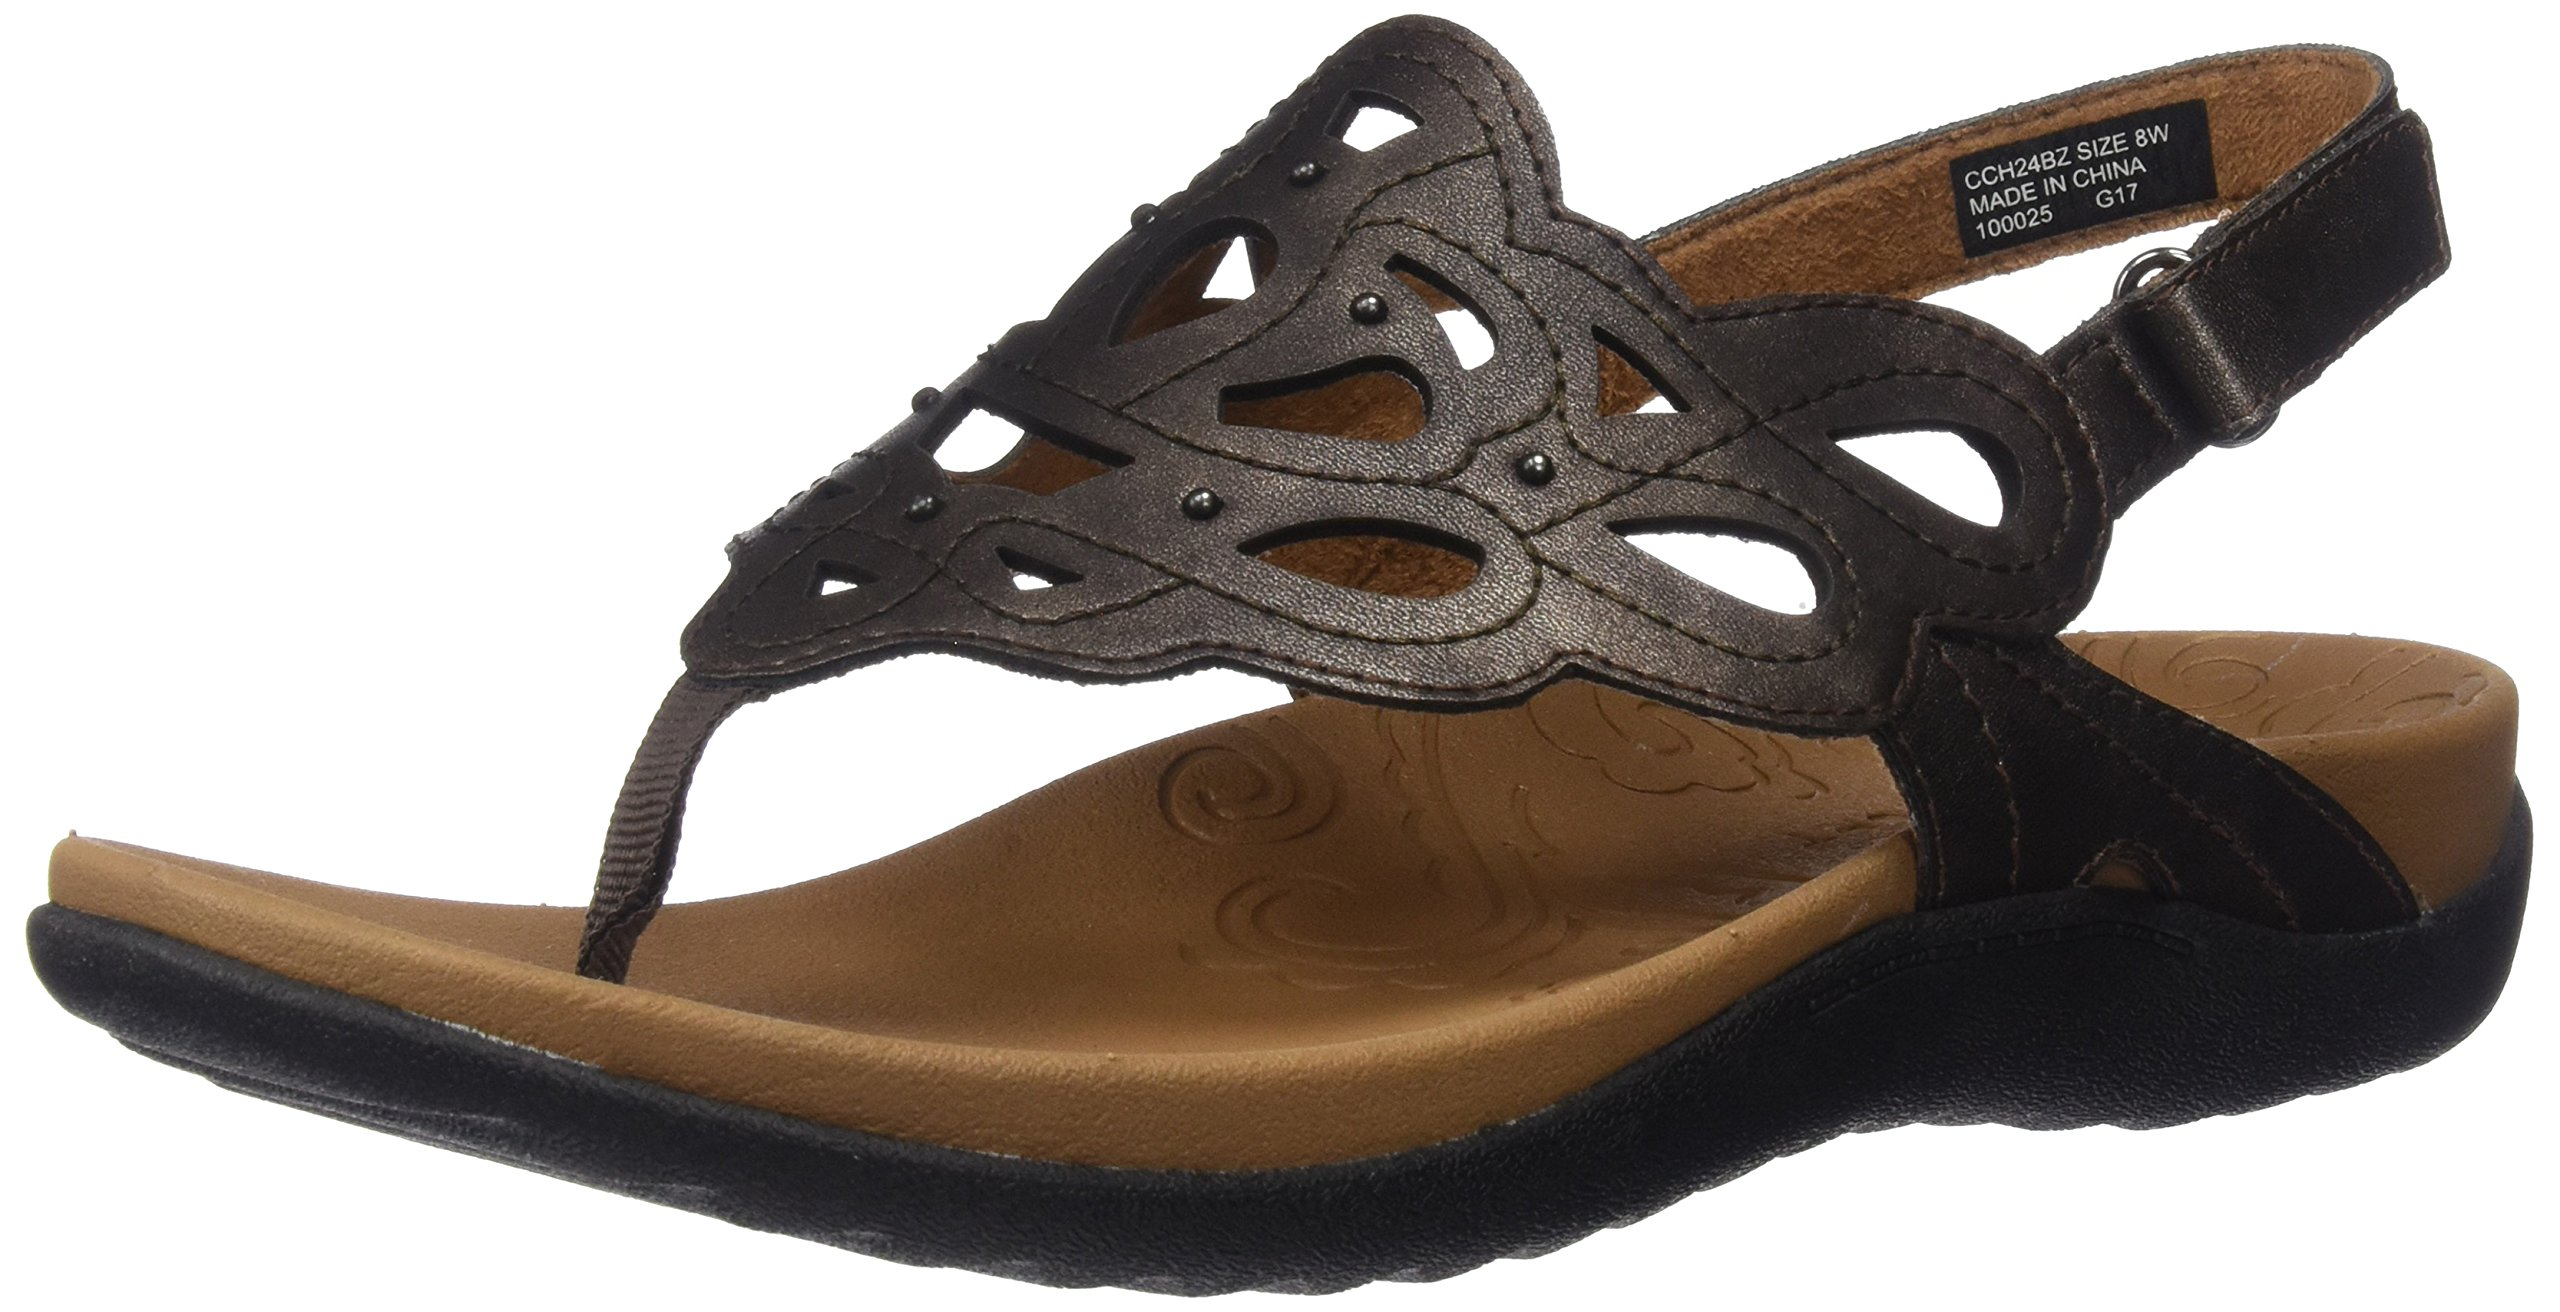 Rockport Women's Ridge Sling Sandal, Bronze, 9 M US